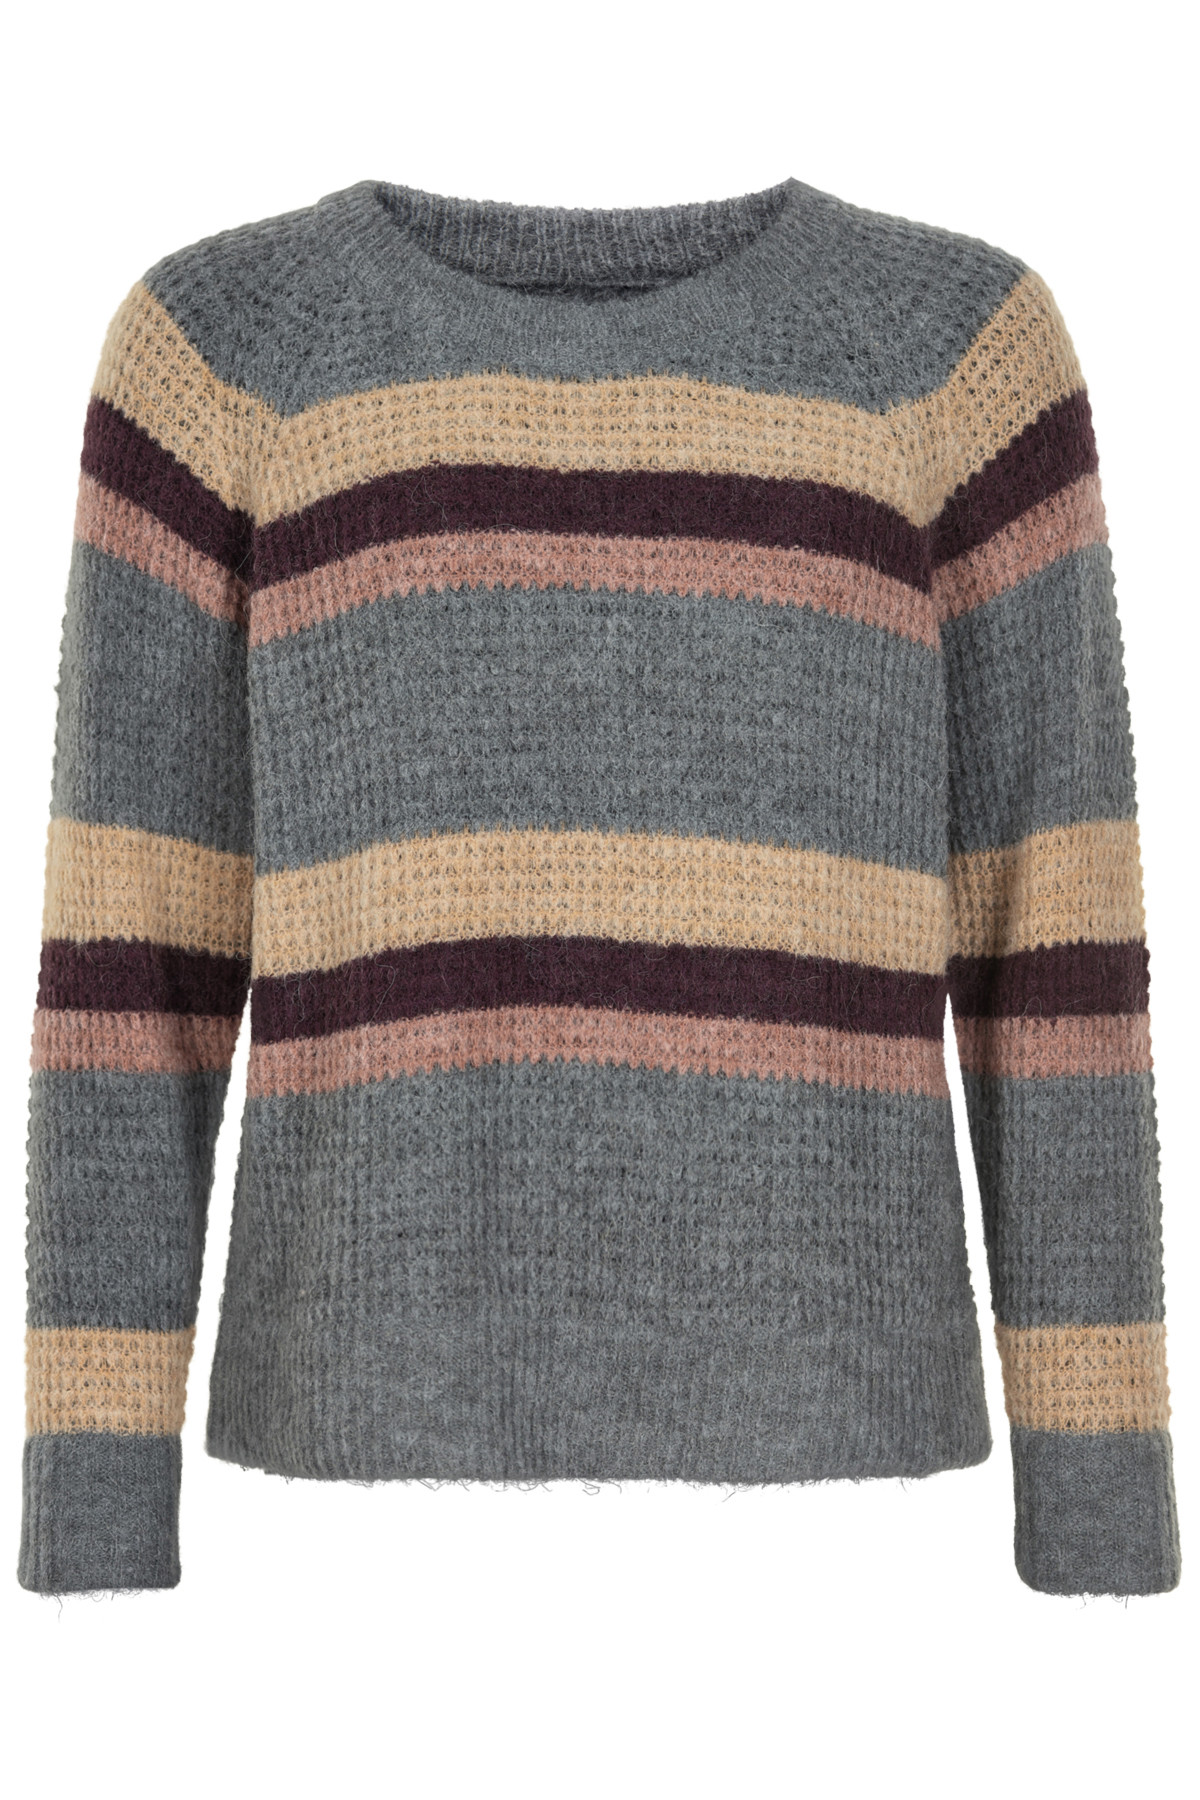 Image of   AND LESS BAMBINA PULLOVER 5419202 S (Sedona, XS)